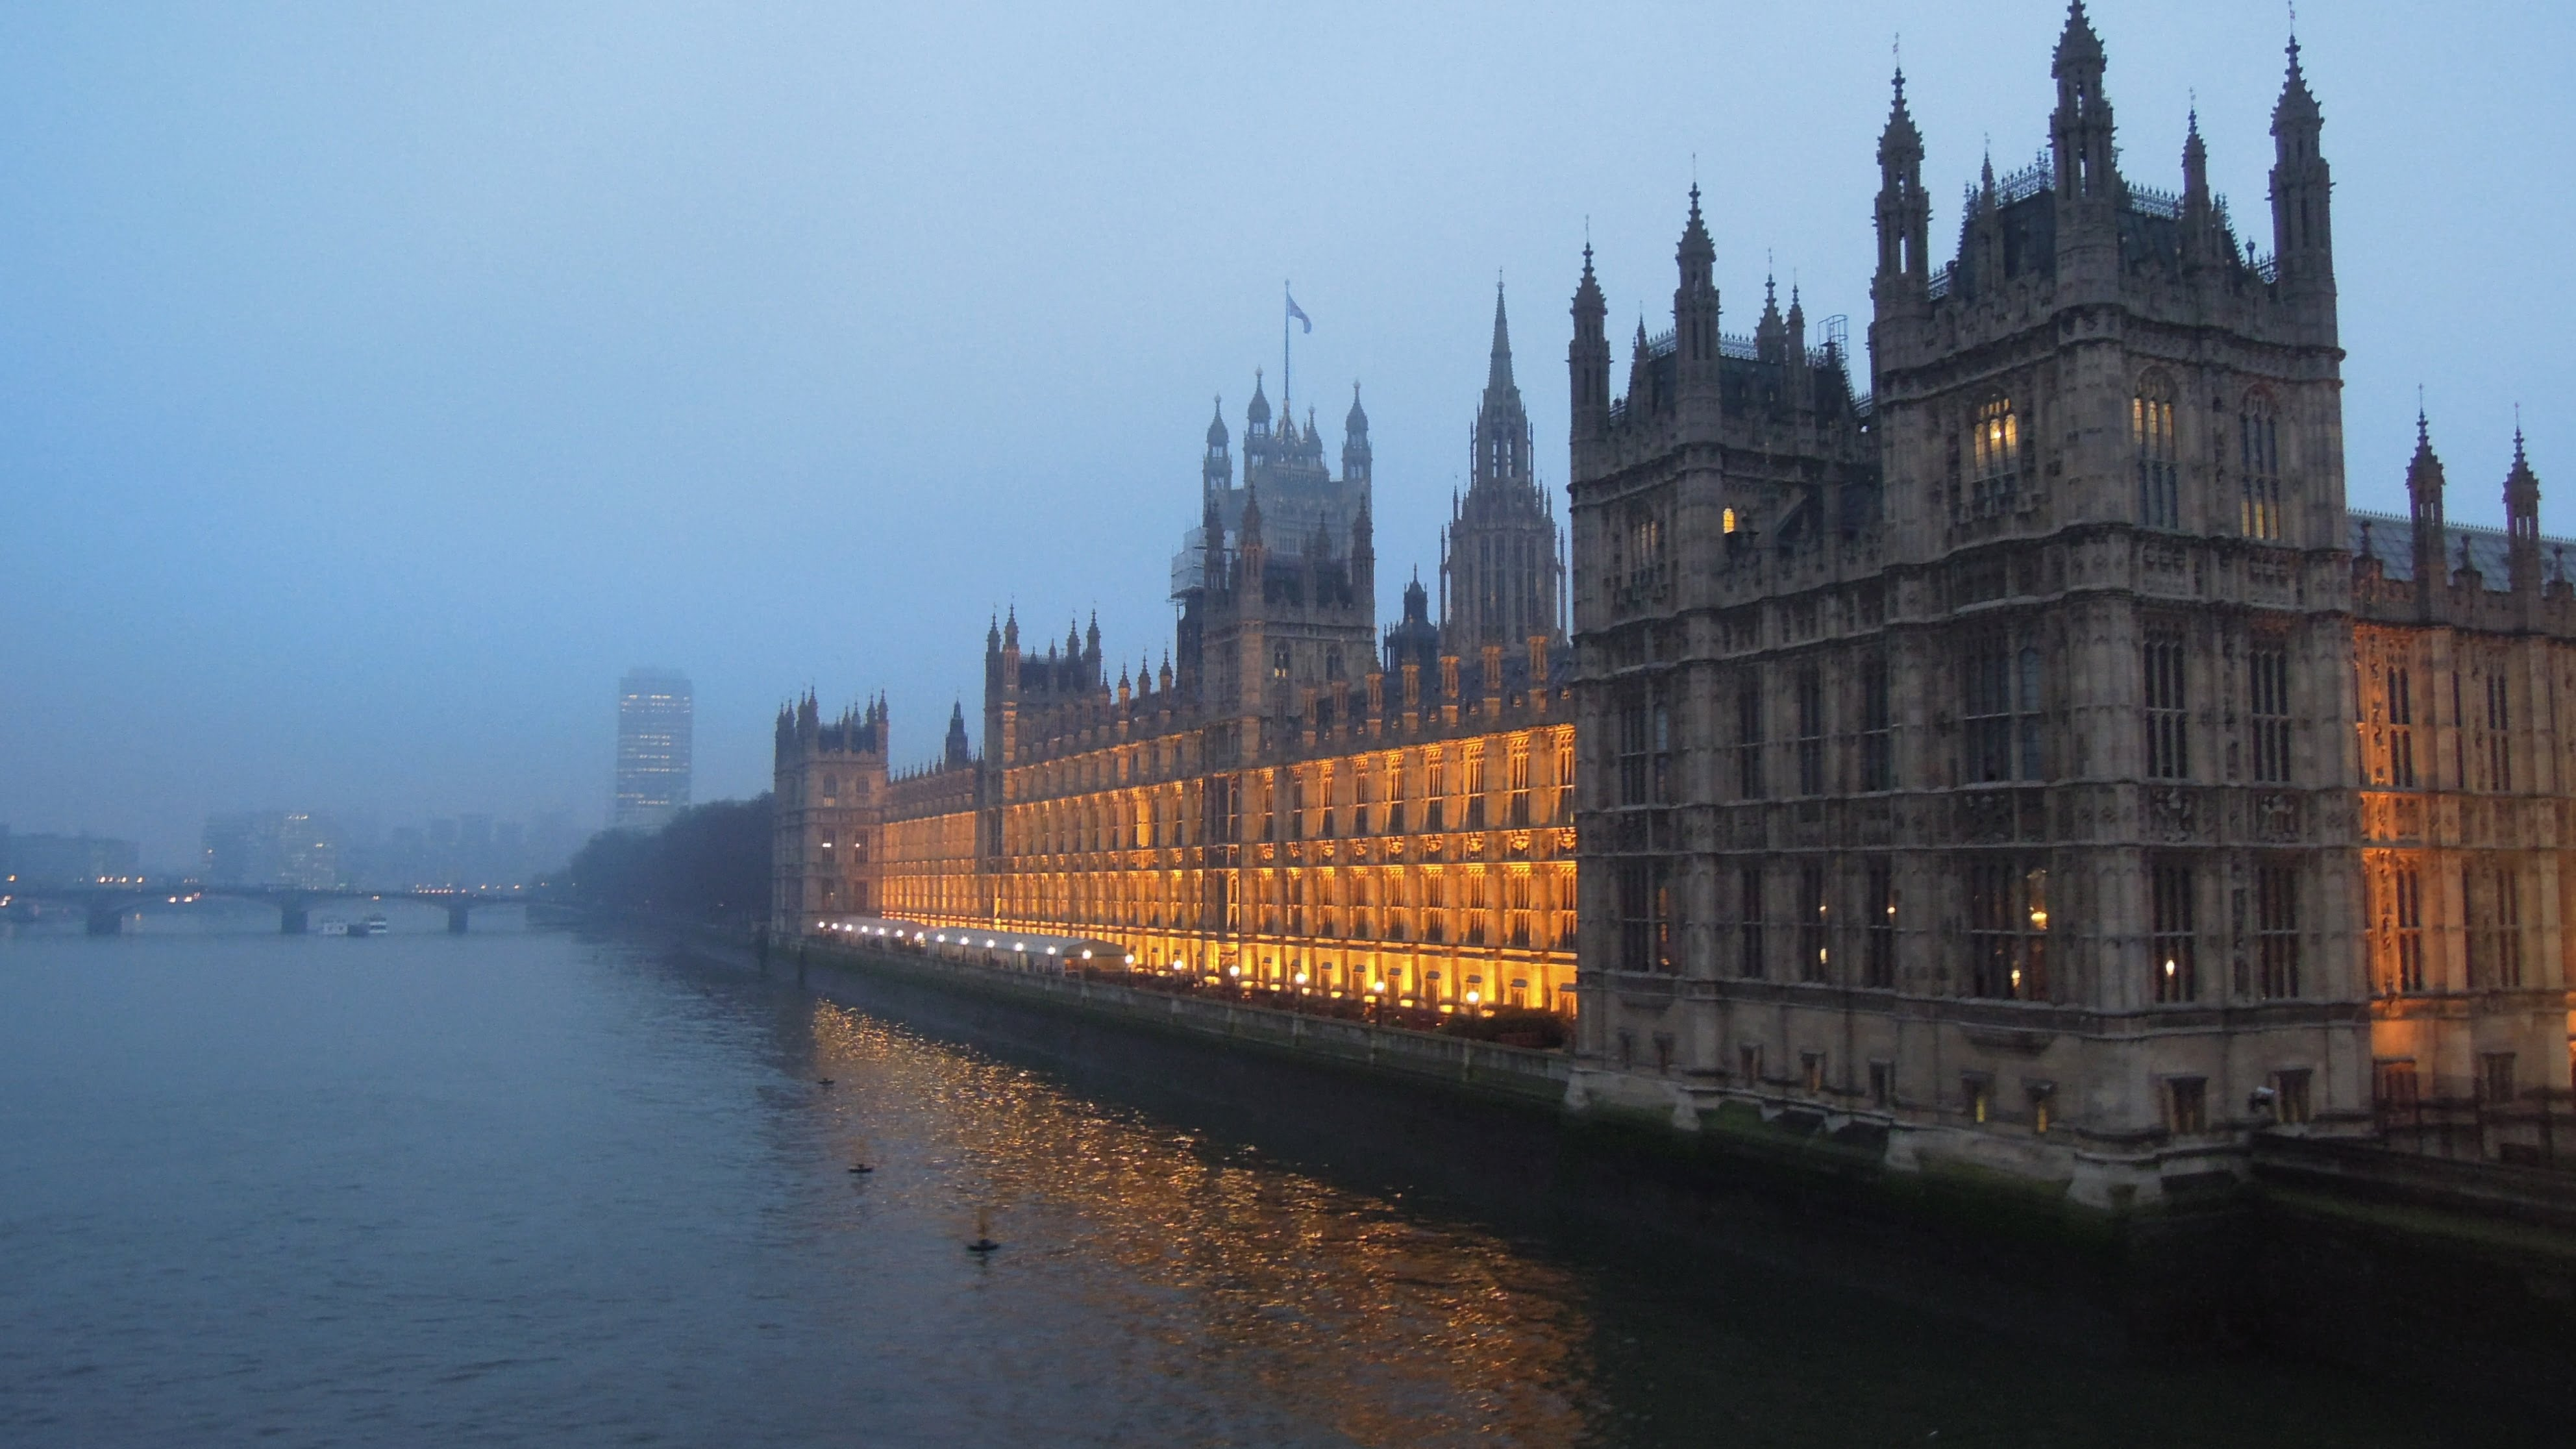 Palace of Westminster 2